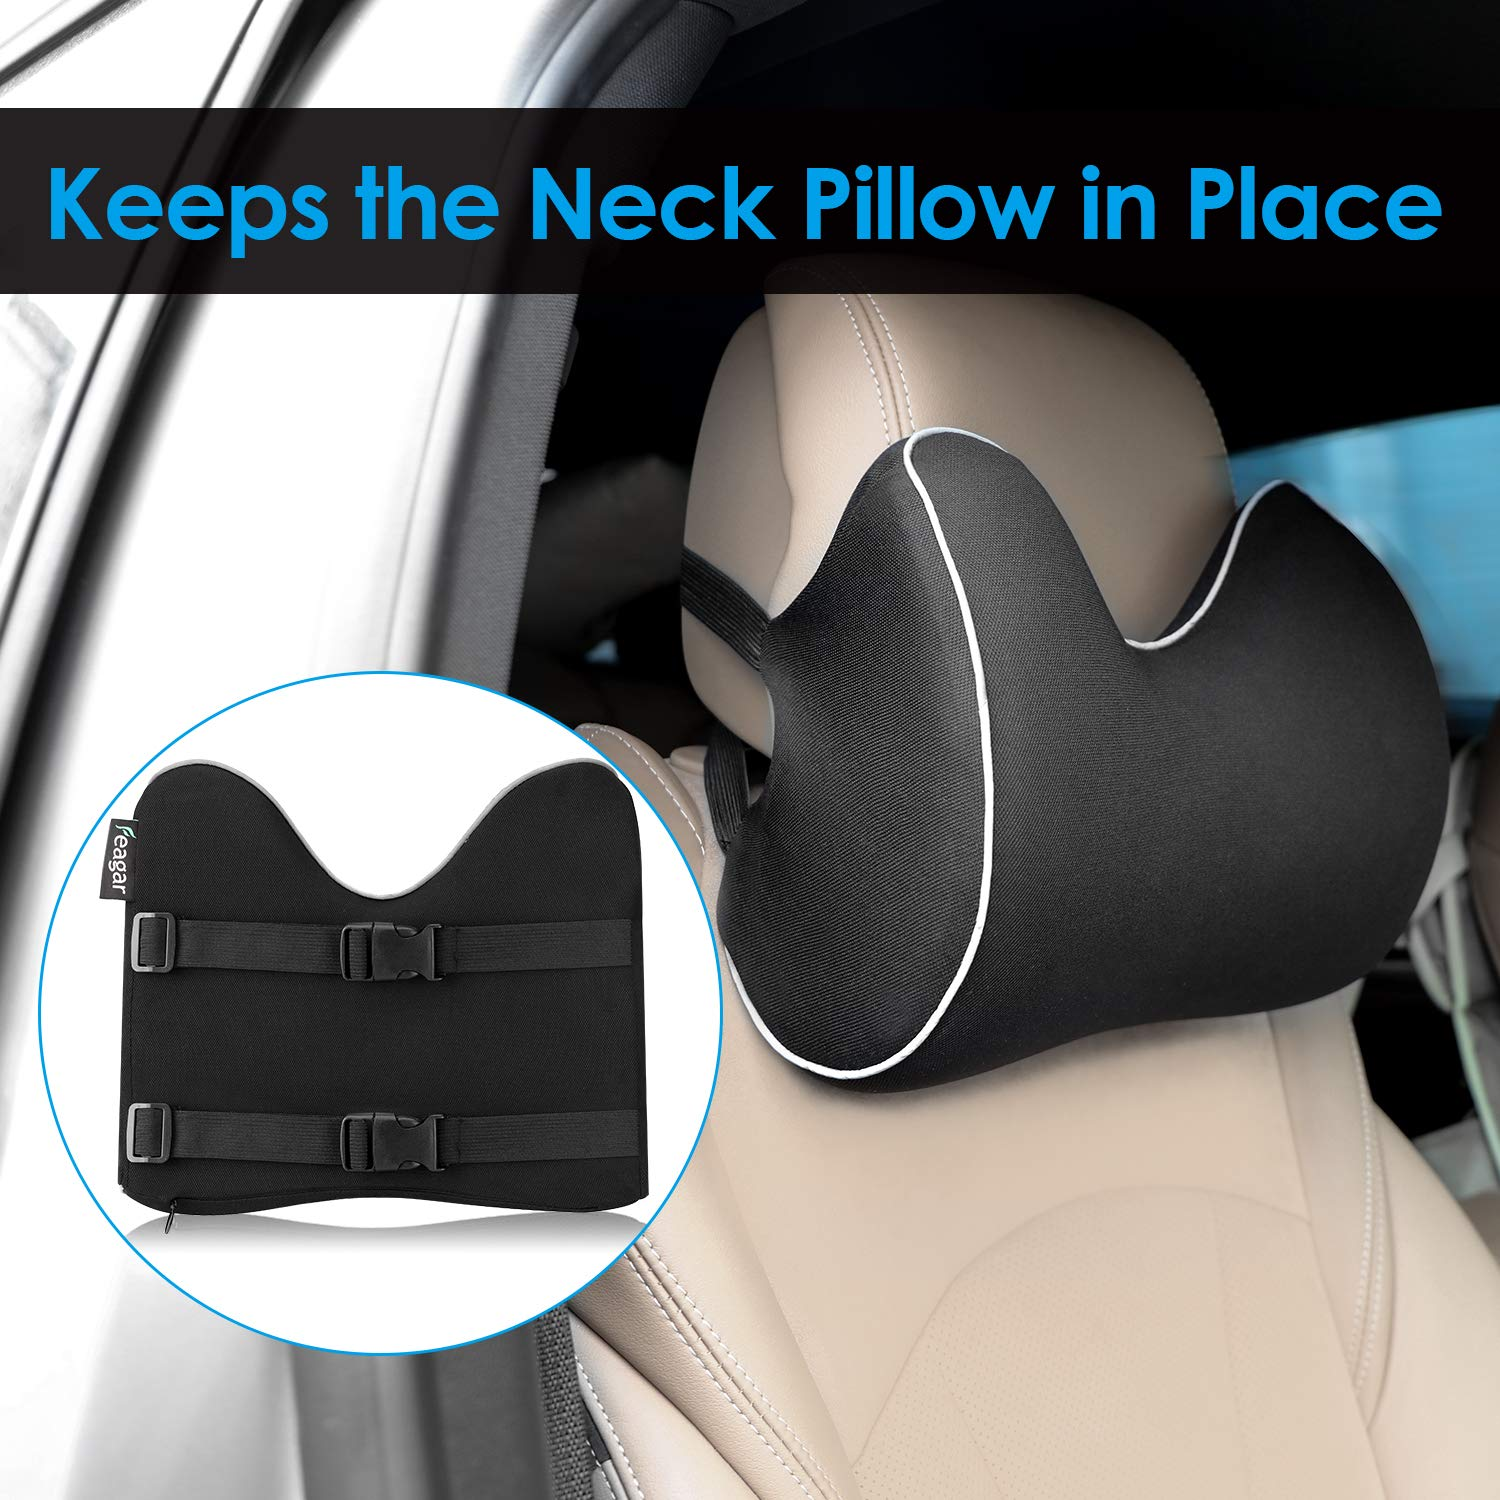 Feagar Car Seat Neck Pillow, Memory Foam Headrest Cushion for Driver Head, Cervical Support - Ergonomic, with 2 Adjustable Straps and Washable Cover- Driving Neck Pain Relief (Black Car Neck Pillow) by Feagar (Image #4)